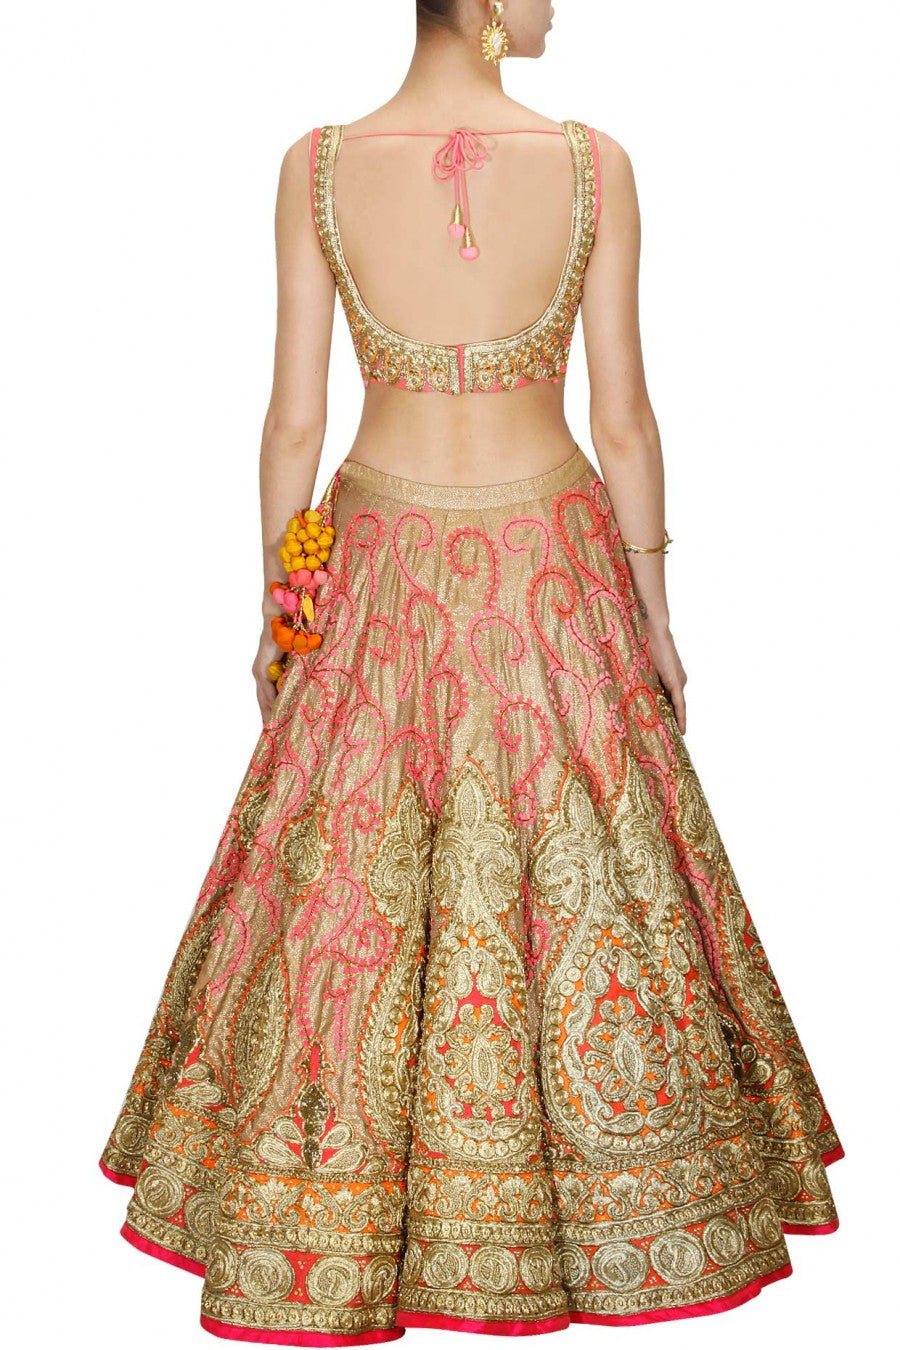 Golden and Pink Bridal Lehenga Choli